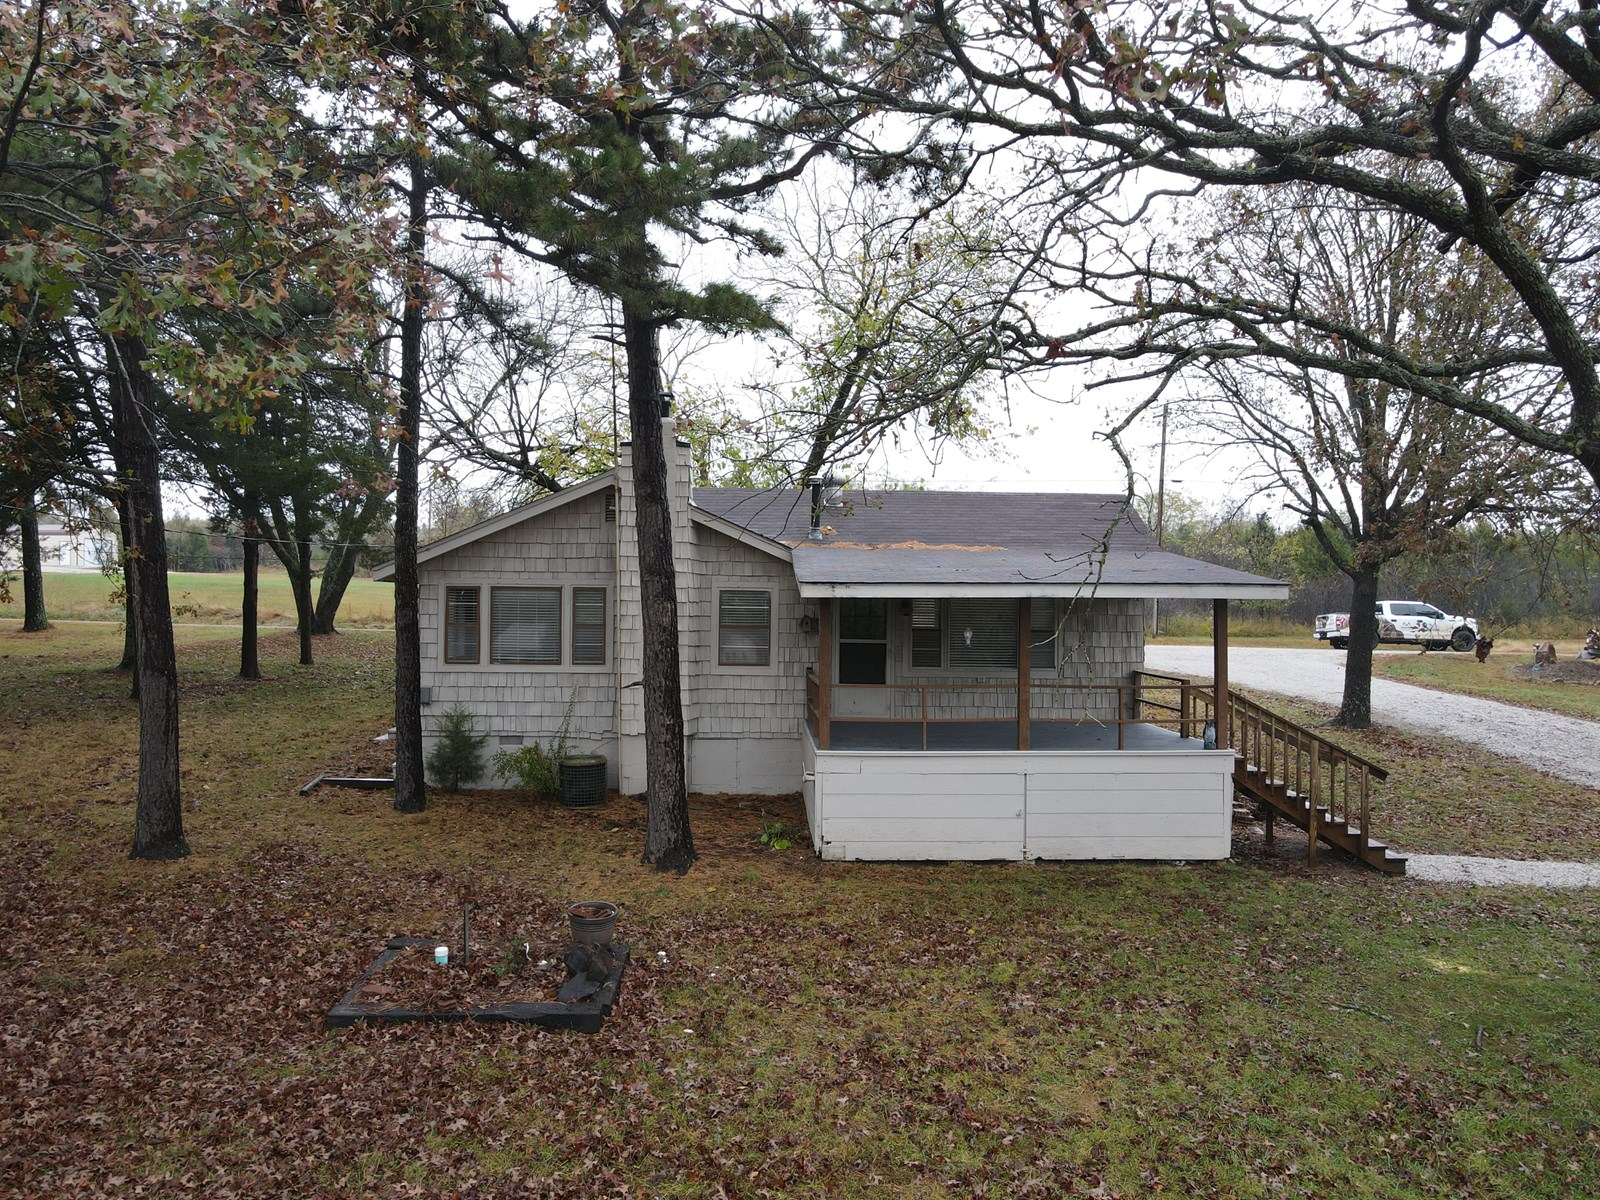 Home for Sale in Galmey, MO Hickory County